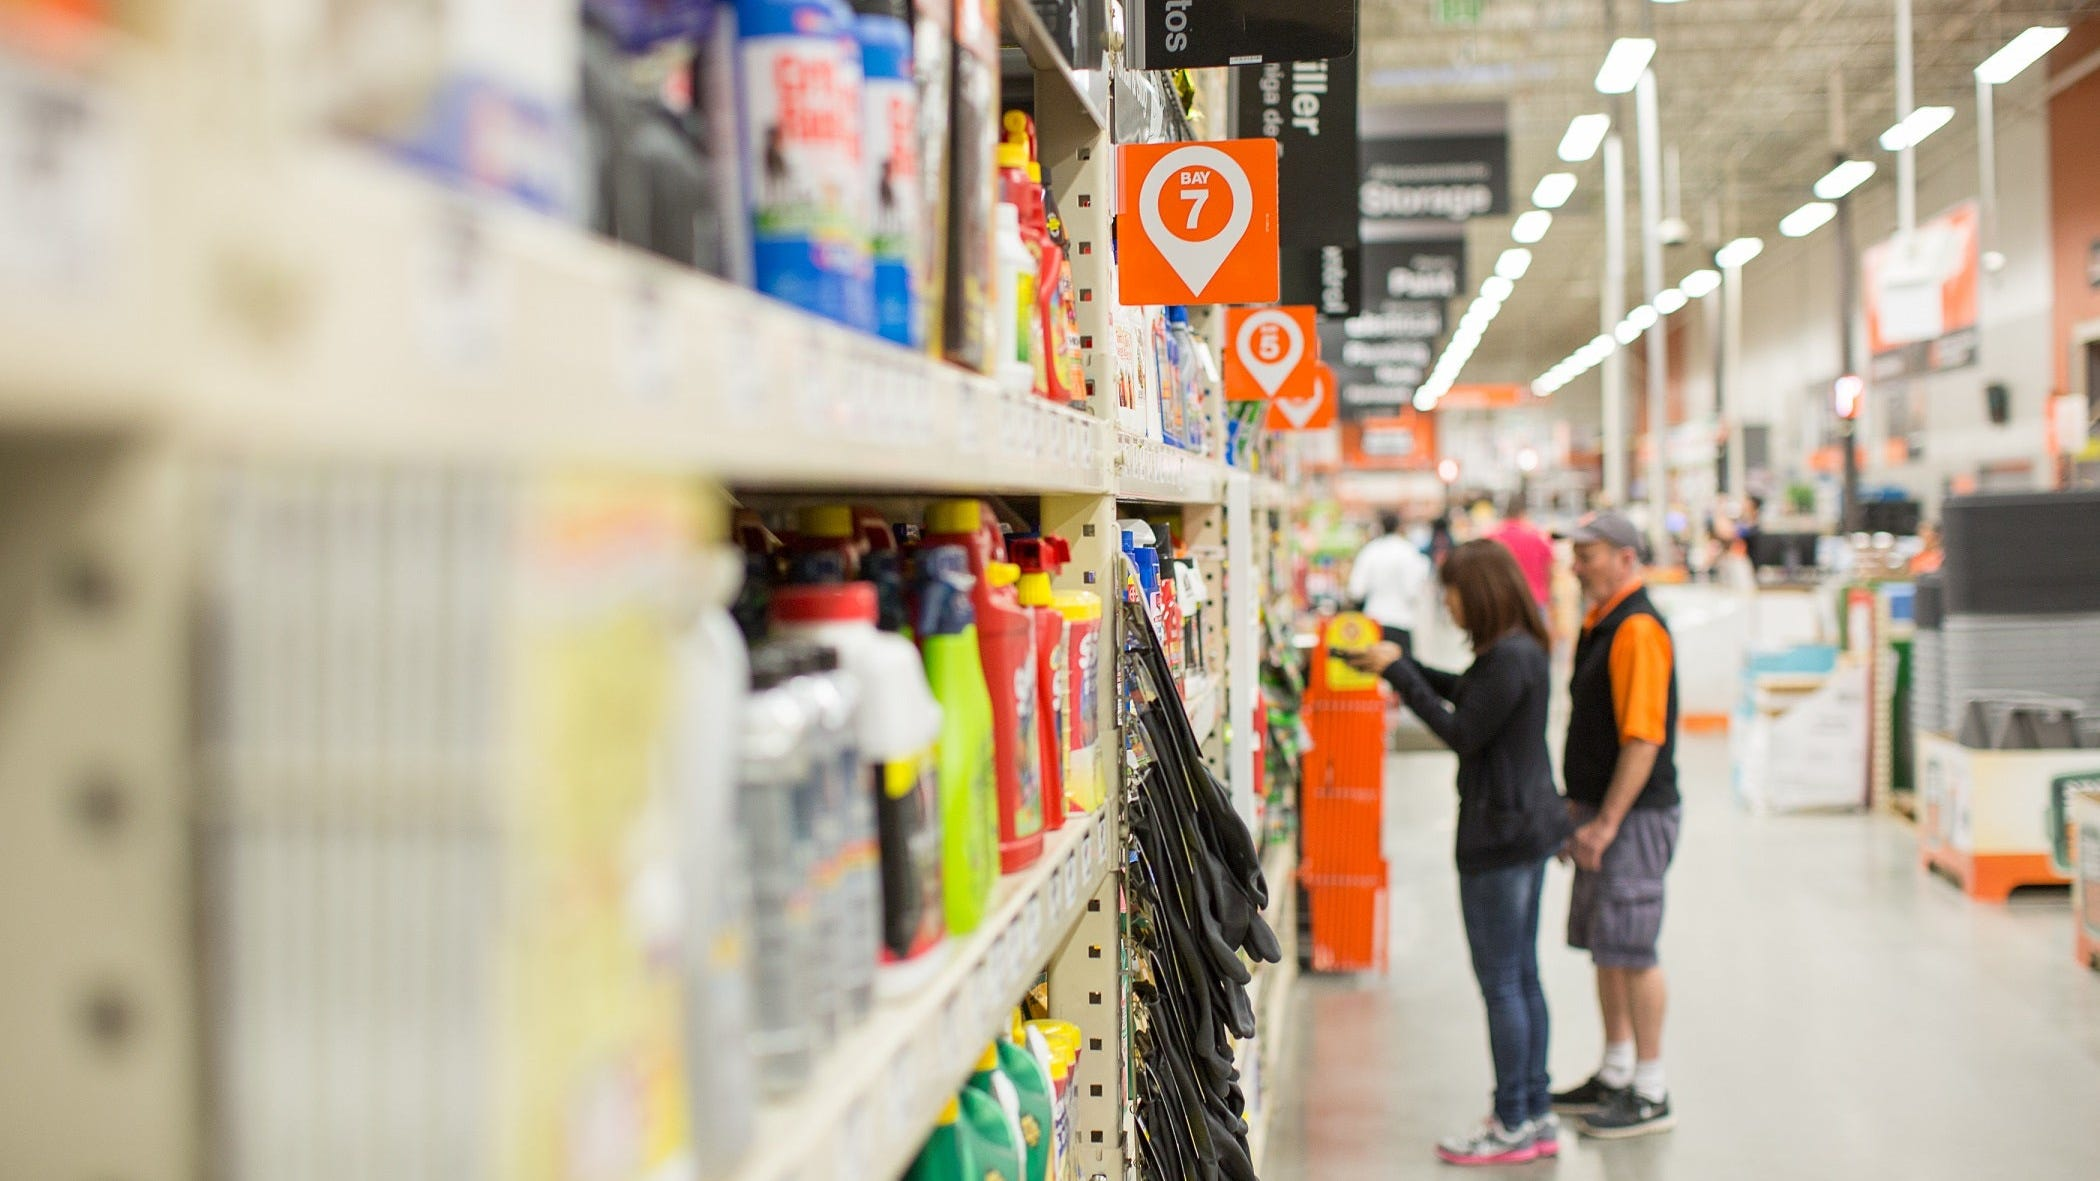 Coronavirus Home Depot Closing At 6 P M Local Time Due To Covid 19